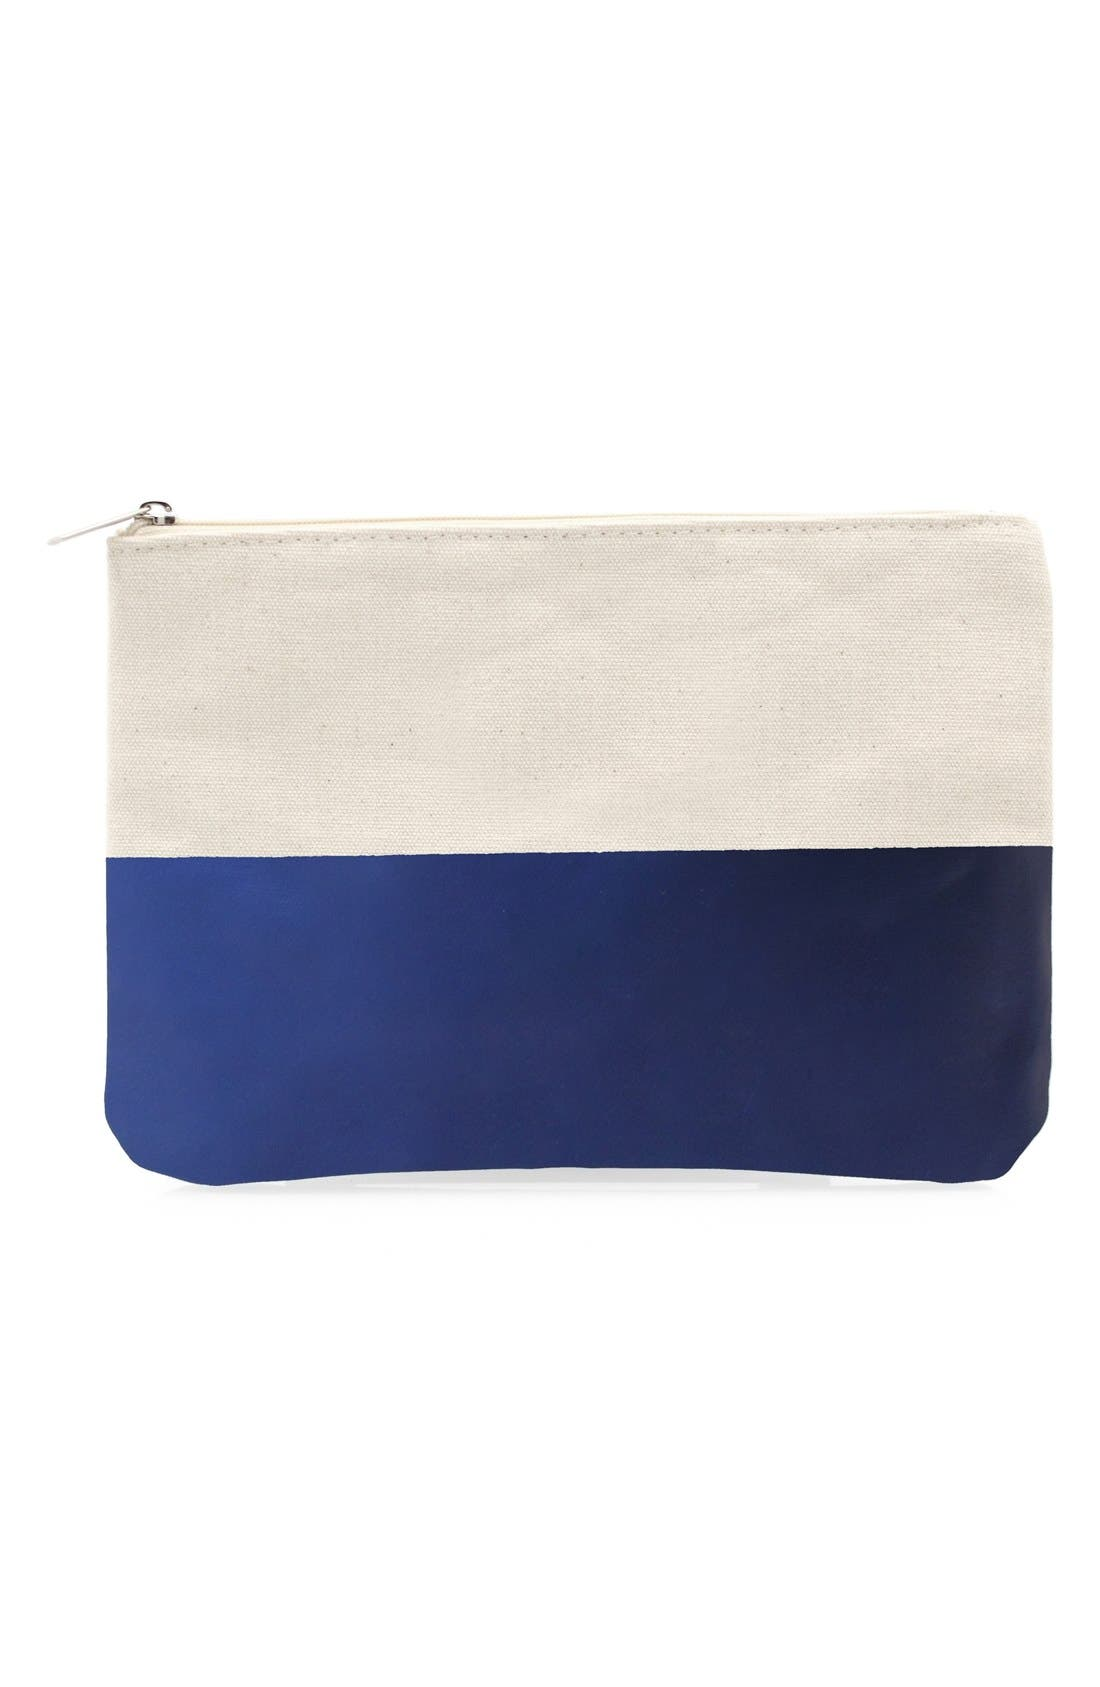 Personalized Canvas Clutch,                             Main thumbnail 1, color,                             400